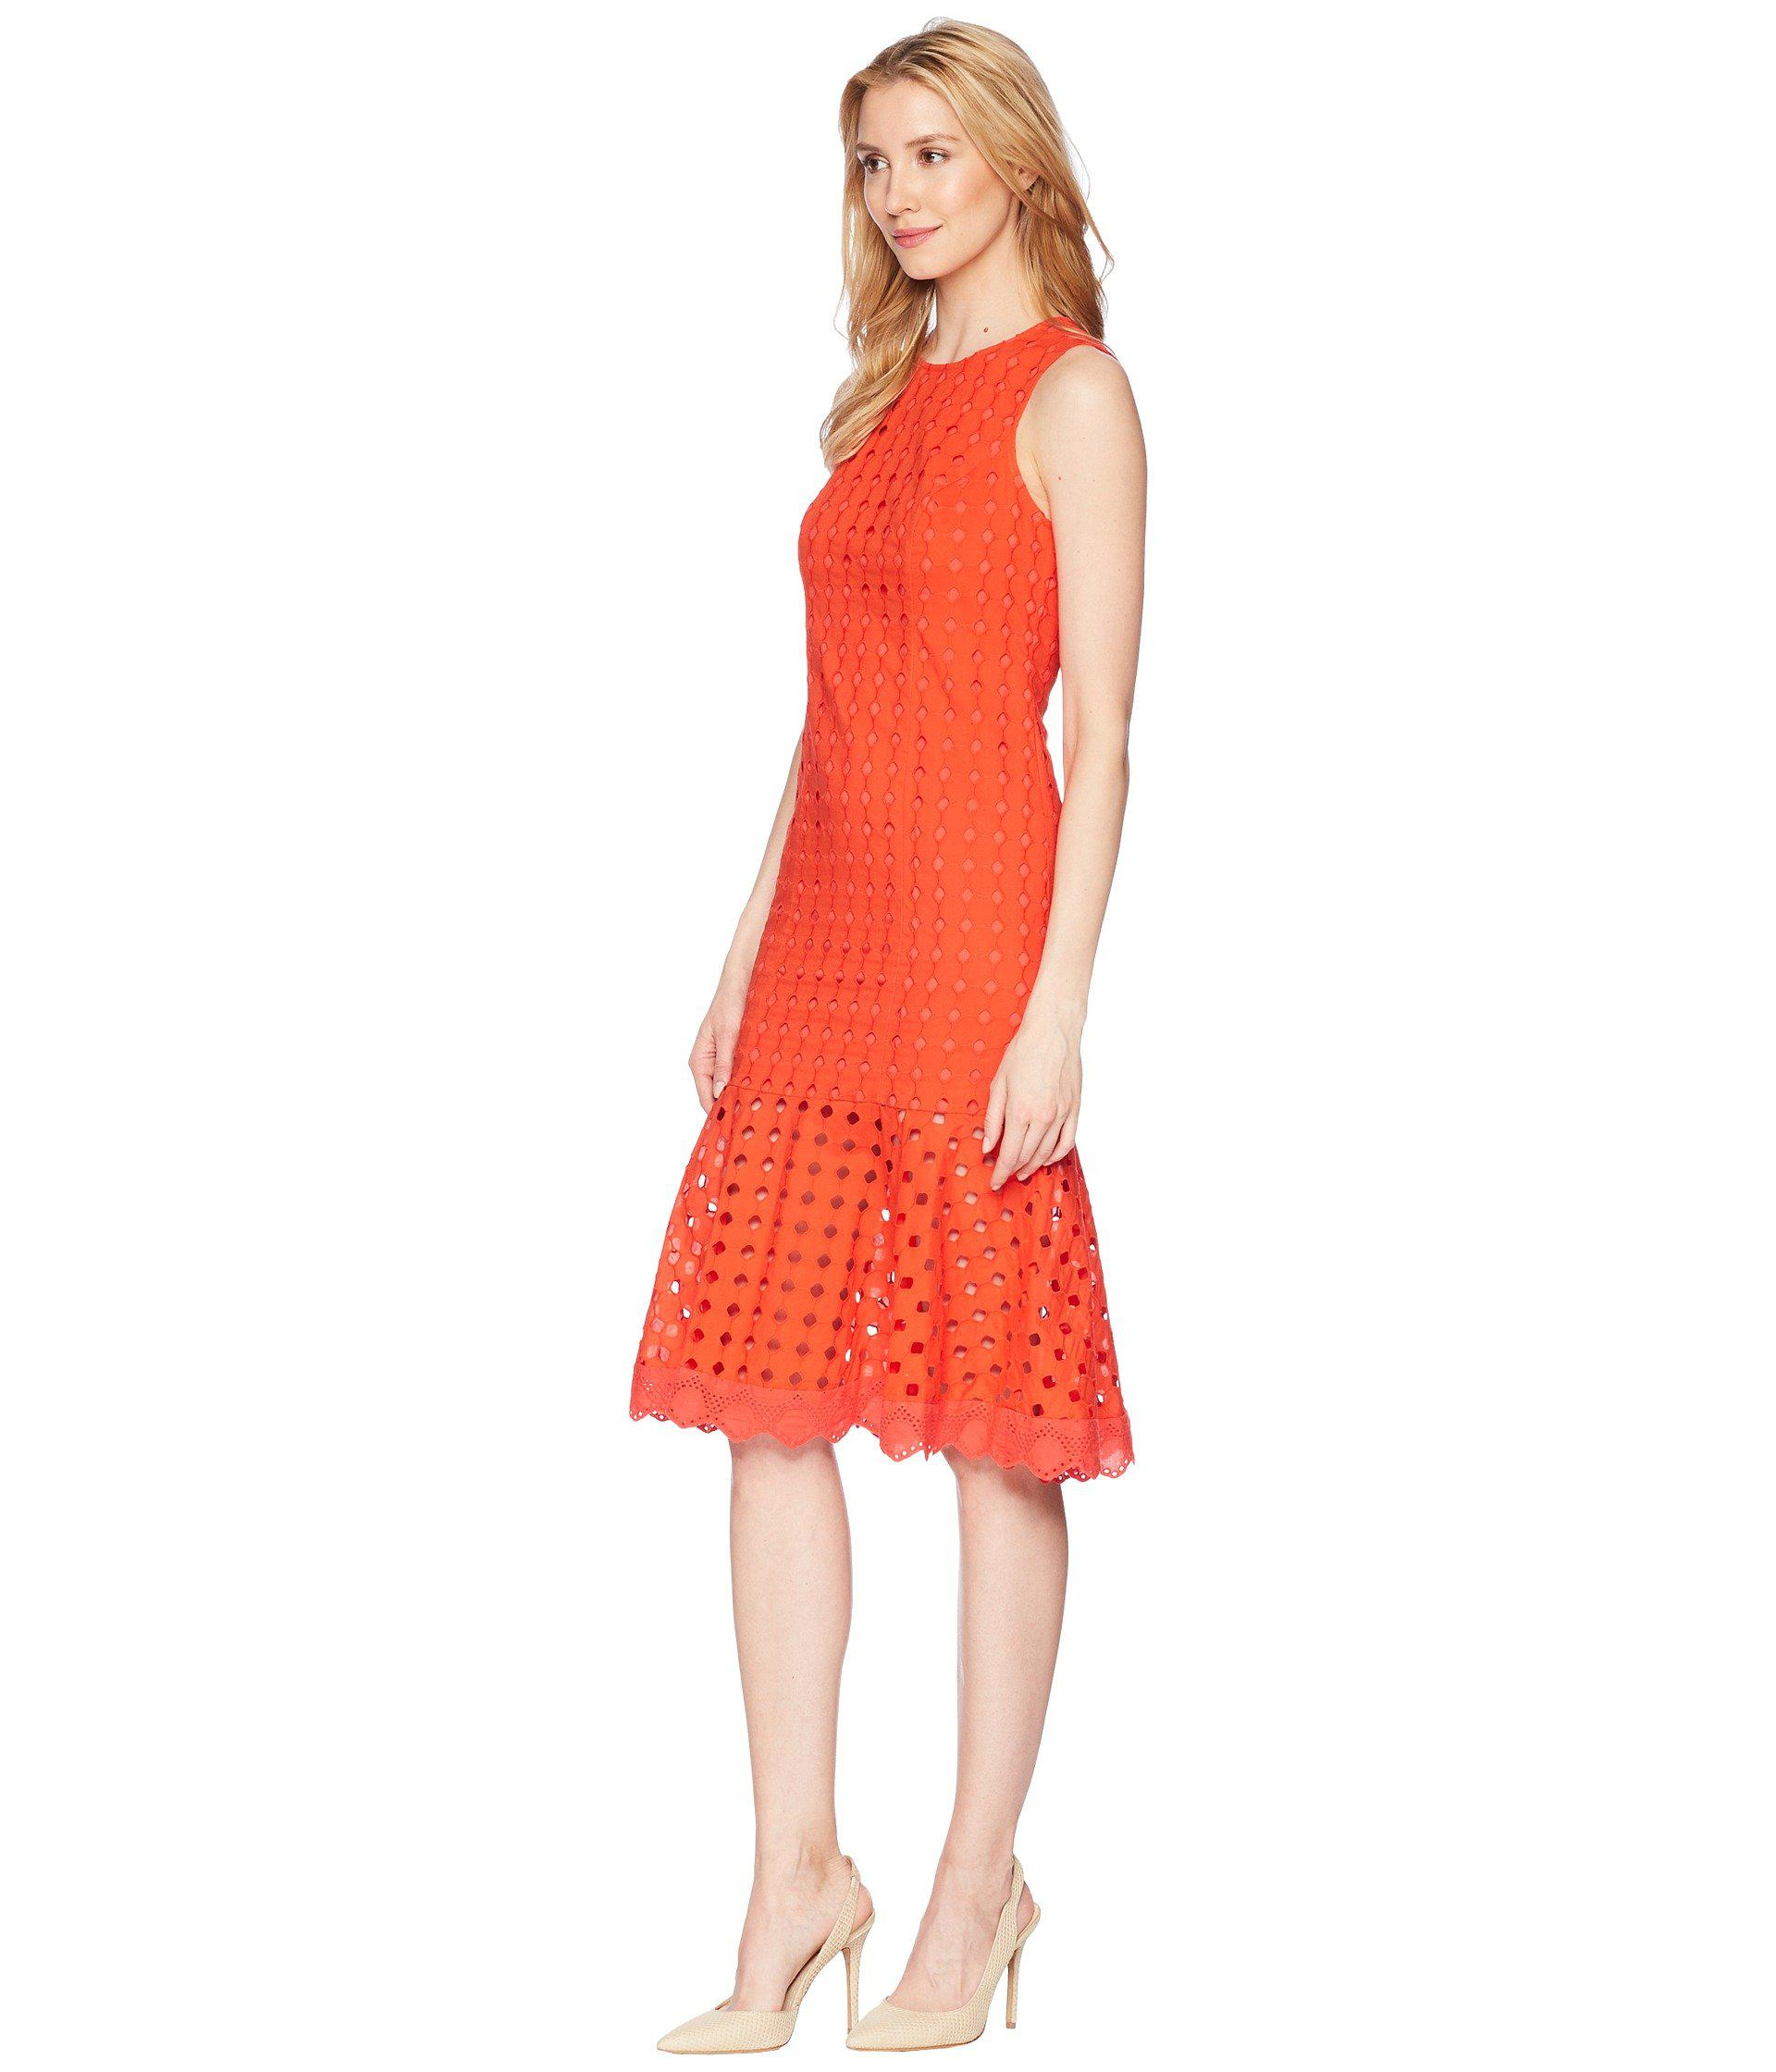 Lyst Donna Morgan Sleeveless Eyelet Midi Dress With Flounce Skirt In Red Save 34 736842105263165